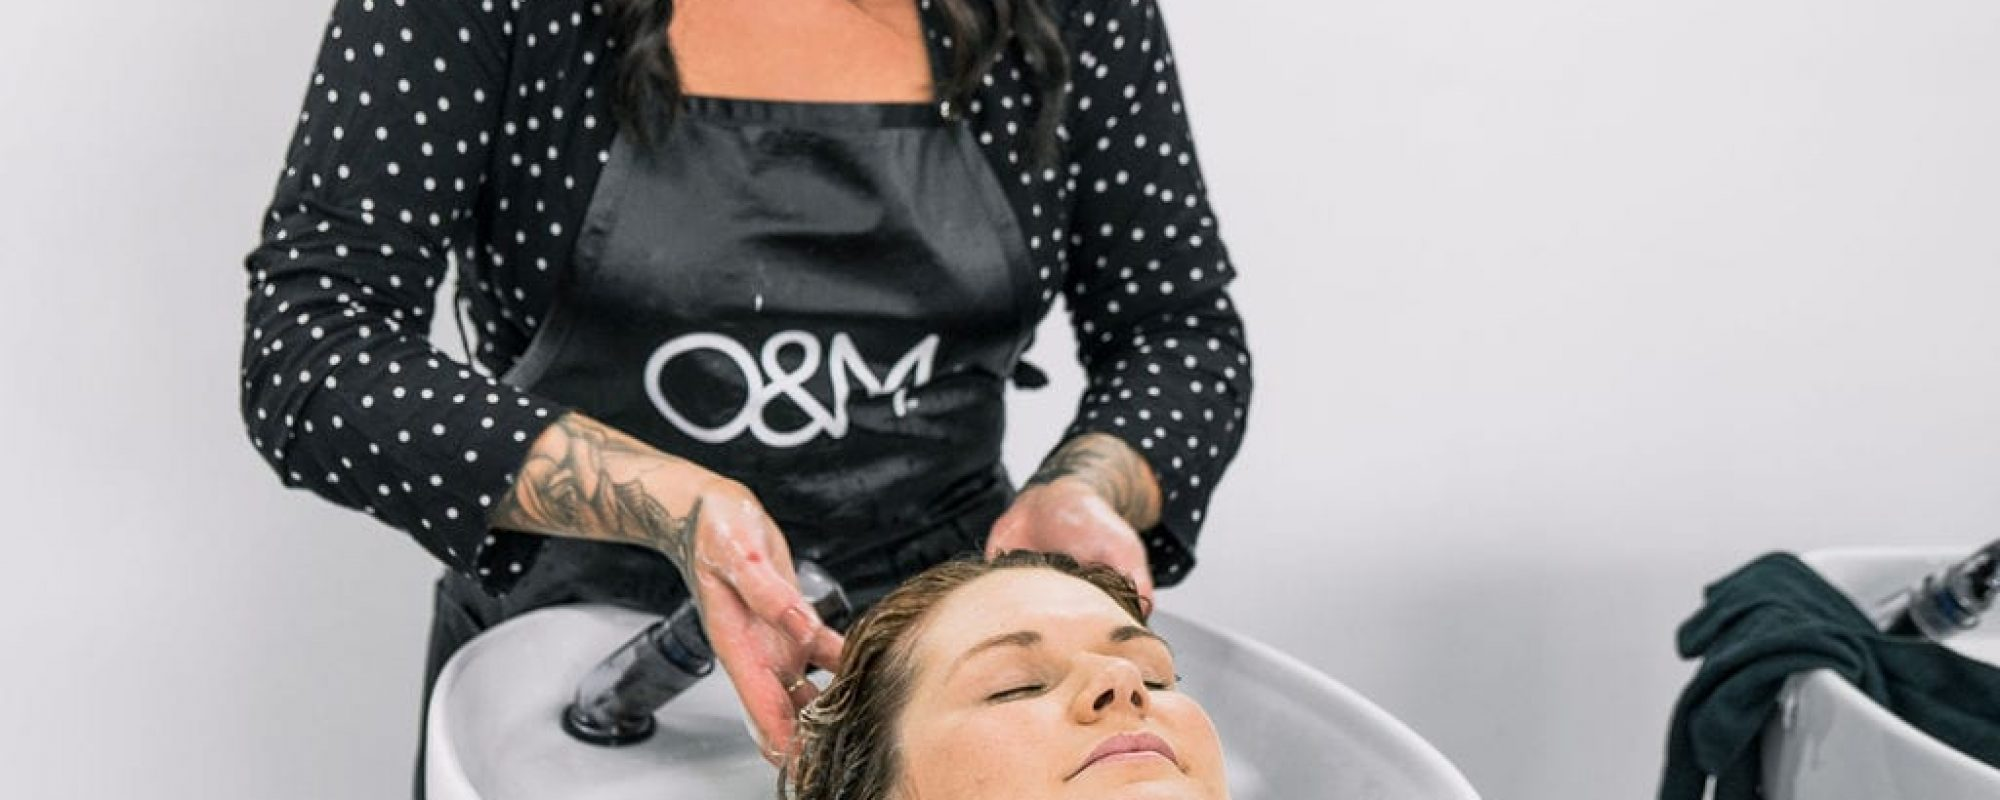 Woman having hair washed in salon basin